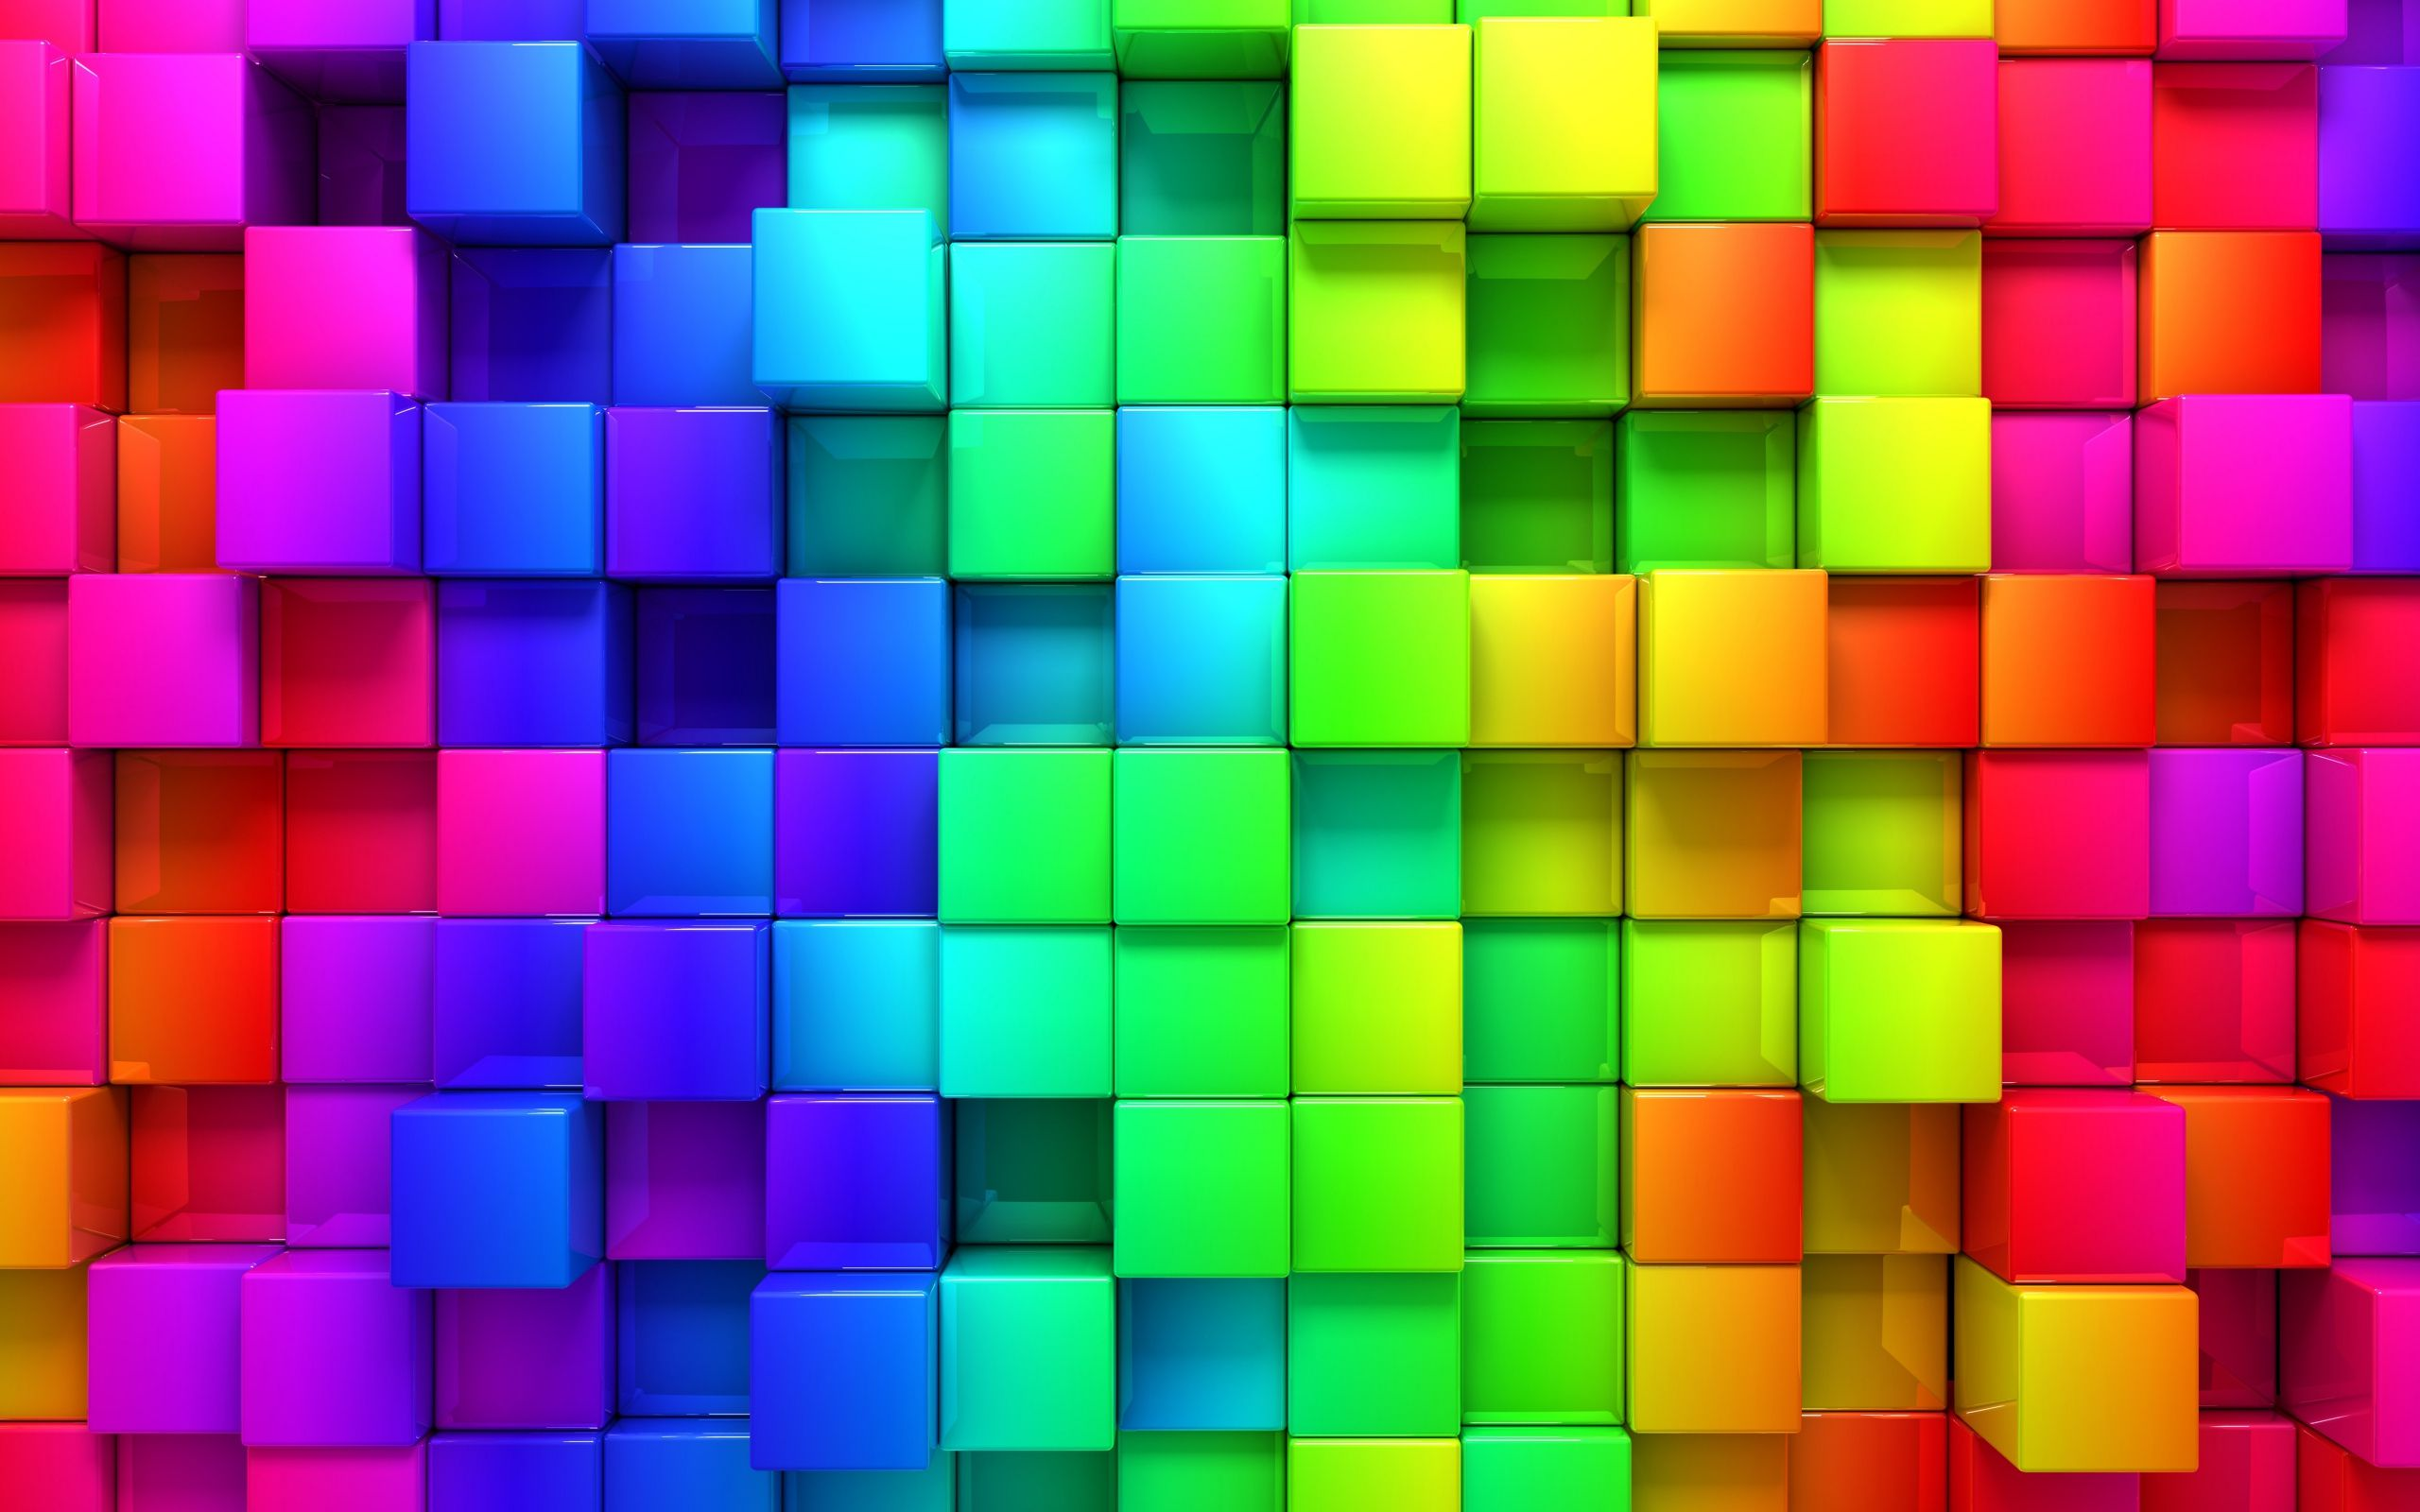 Hd Wallpaper Rainbow Color 3d Blocks Graphics Plano De Fundo